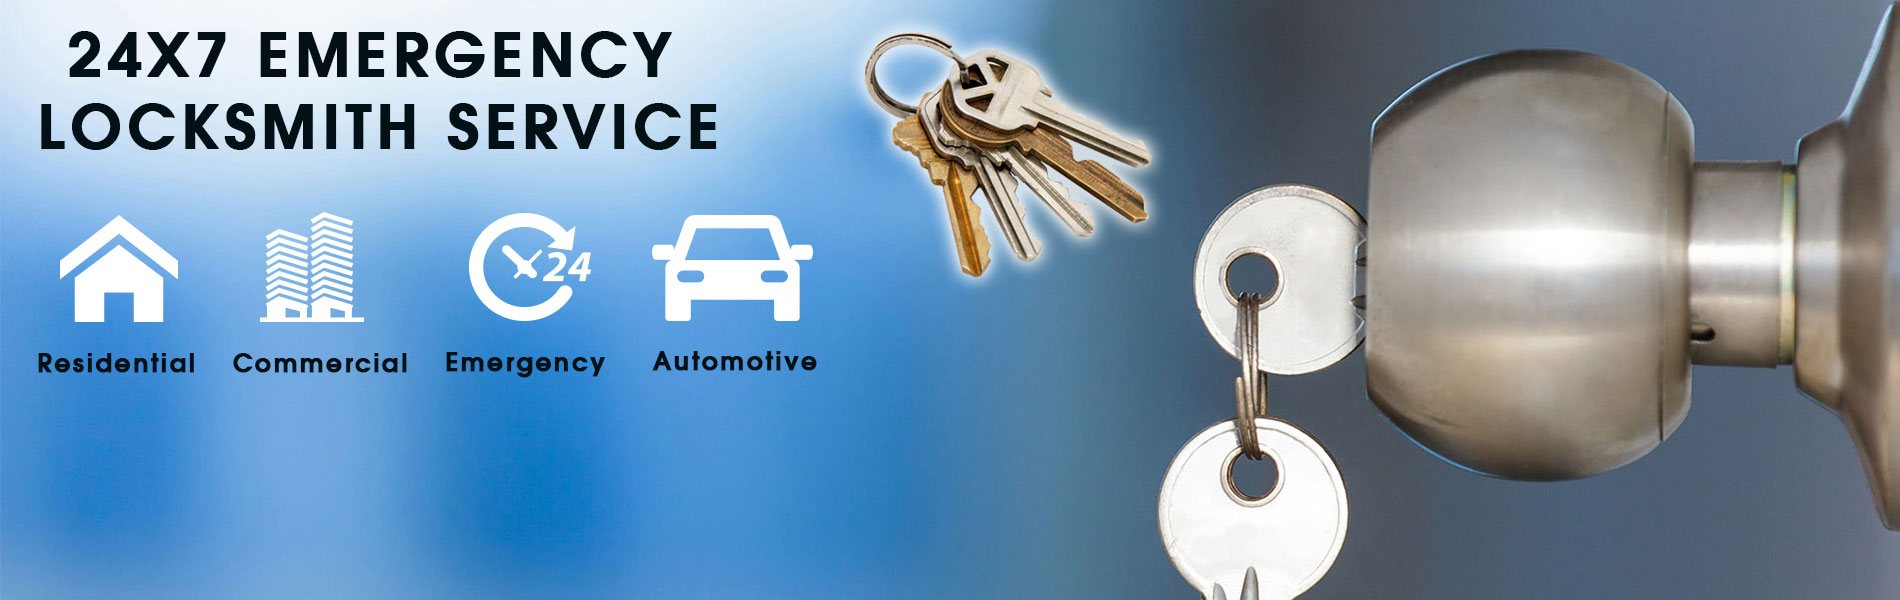 Golden Locksmith Services Avon Lake, OH 440-226-5066